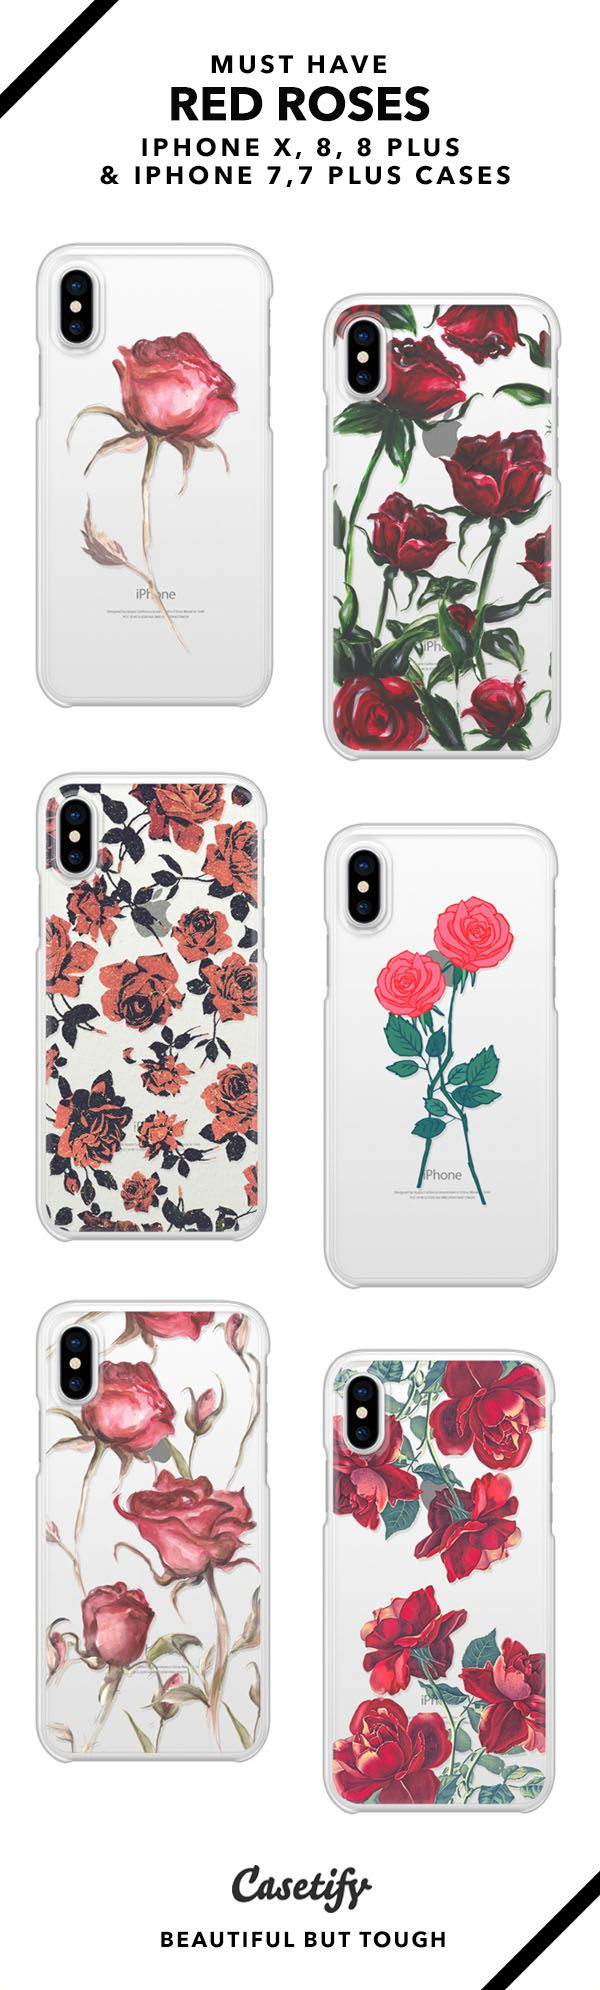 Must Have Red Roses Iphone 8 Iphone 8 Plus Iphone 7 Iphone 7 Plus Case Shop Them Here Beauti Rose Phone Case Floral Iphone Case Iphone Case Design